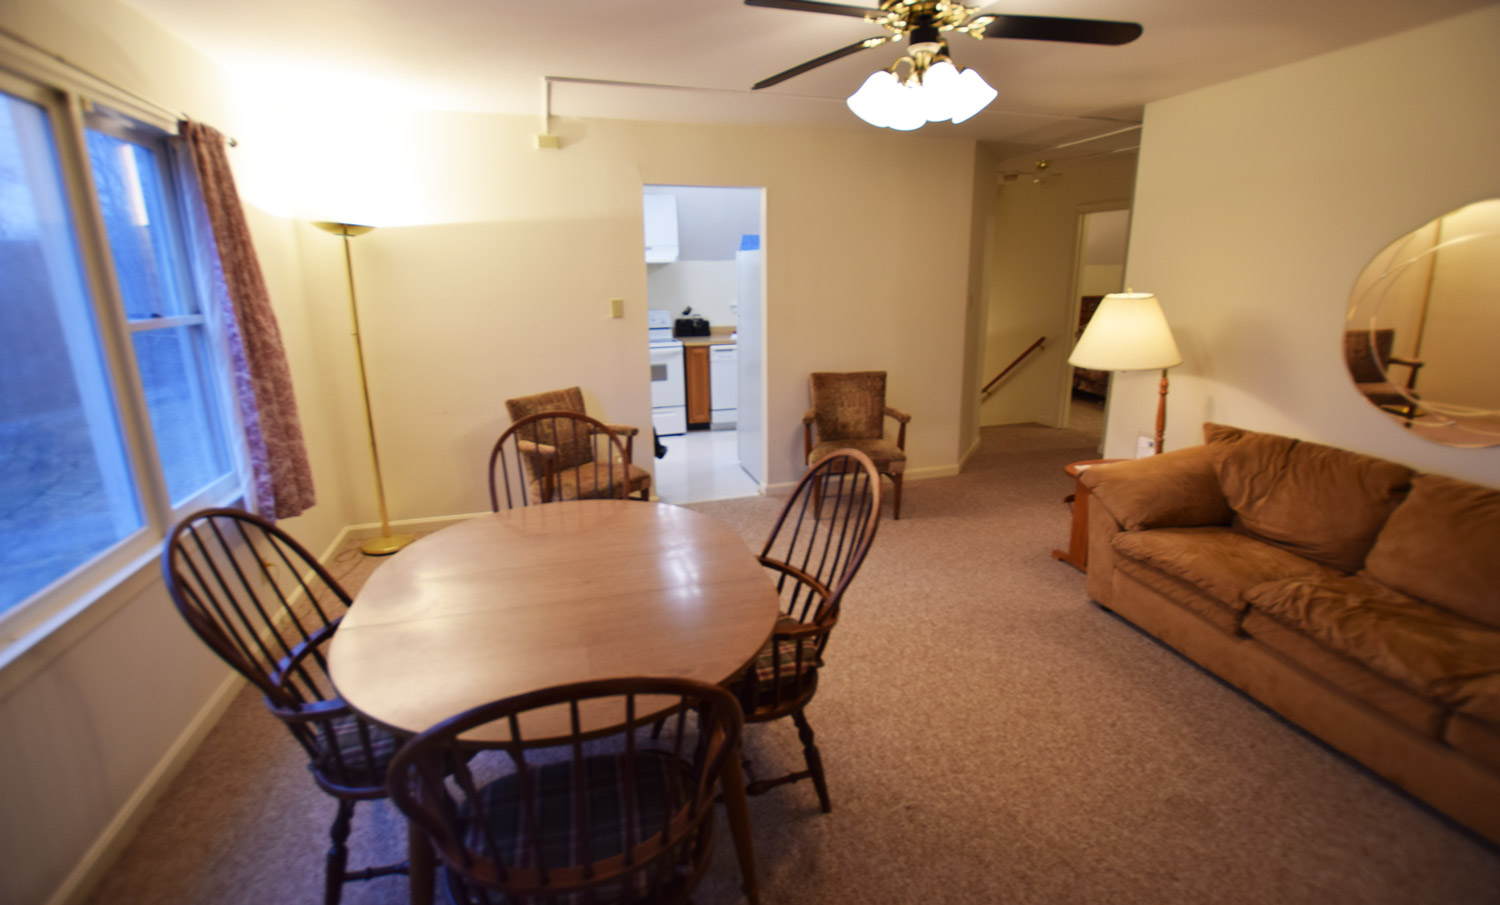 Living - Dining Area